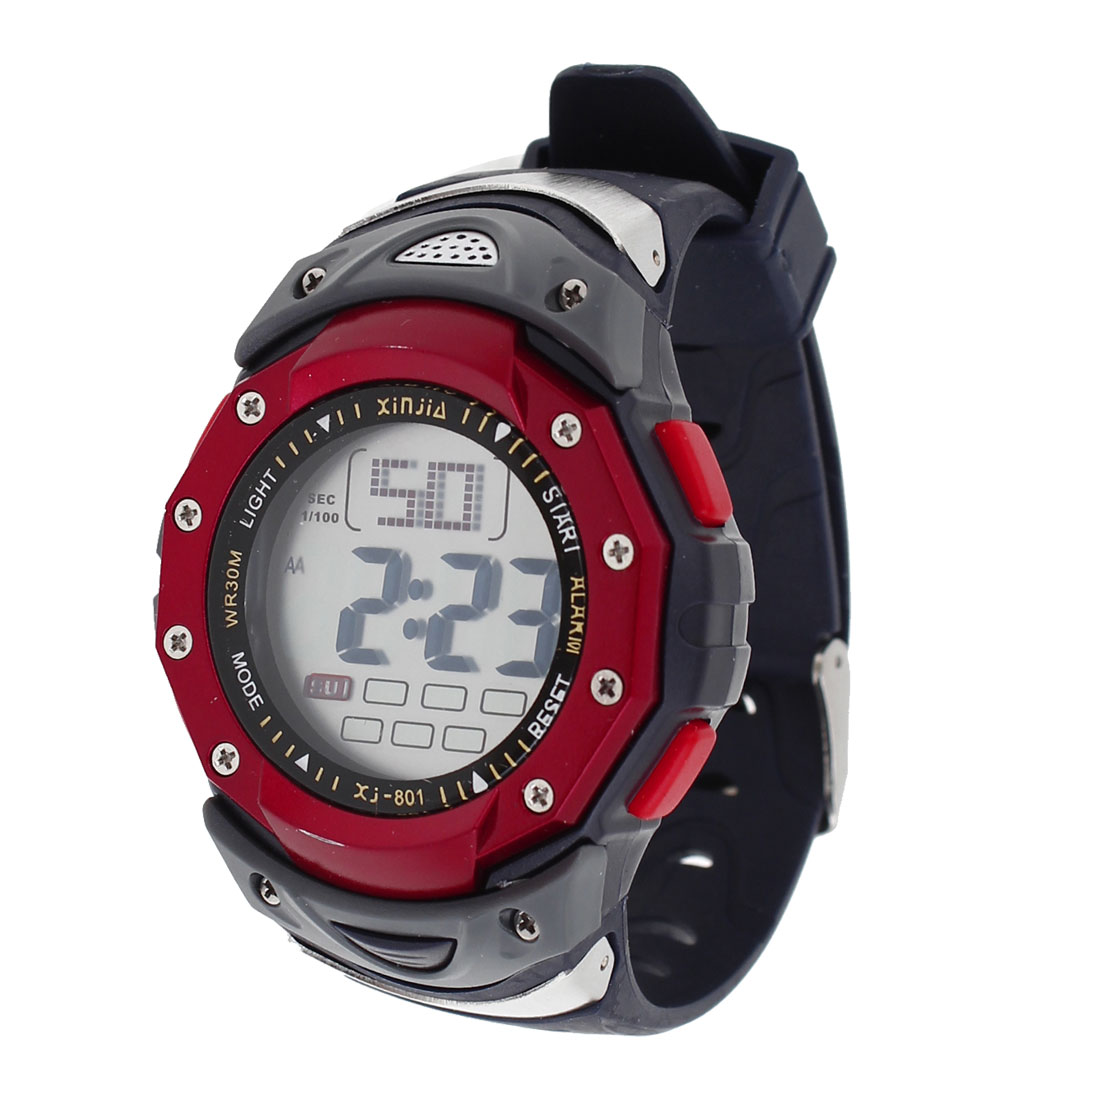 Kids Plastic Digital Wrist Watchband Sports Alarm Watch Burgundy Red